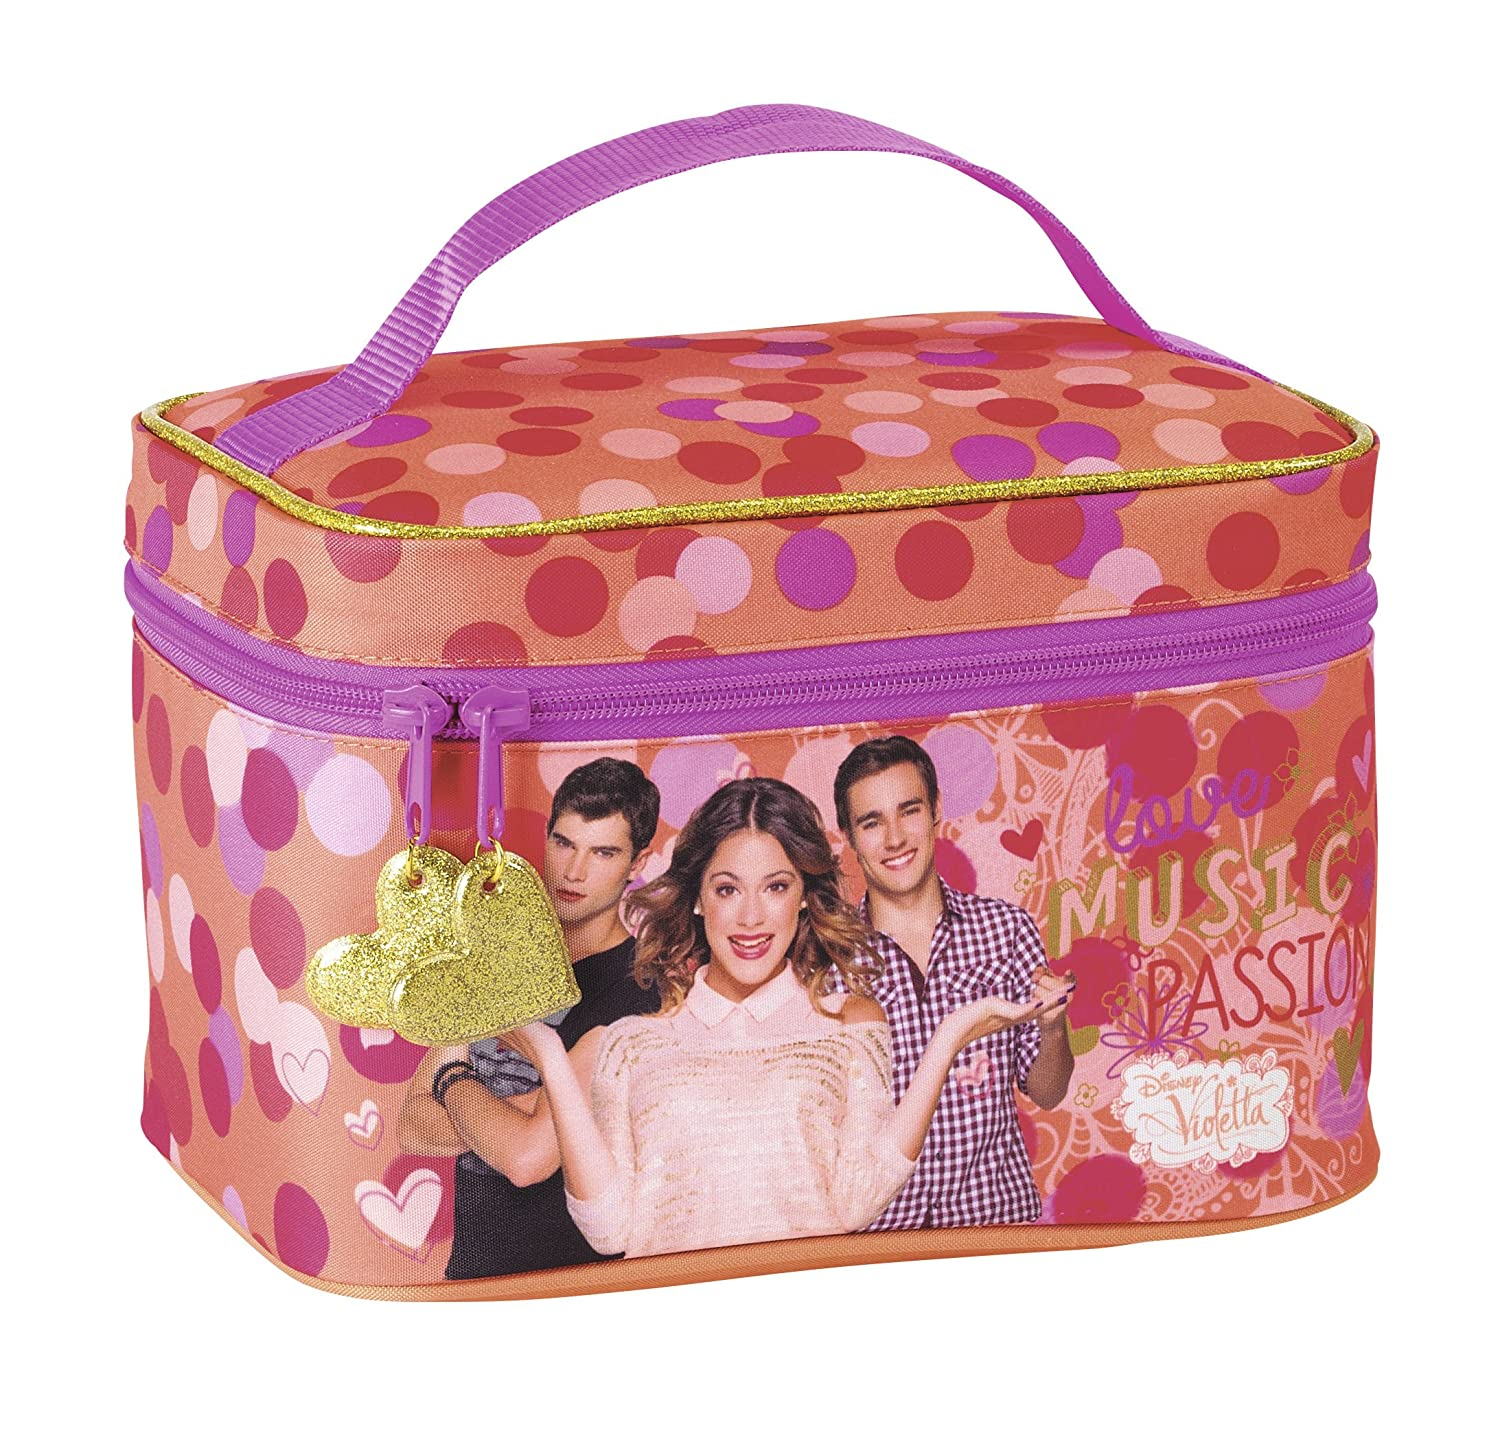 BEAUTY CASE VIOLETTA BORSA NUOVA ORIGINALE DISNEY BAG TRACOLLINA REGOLABILE safta